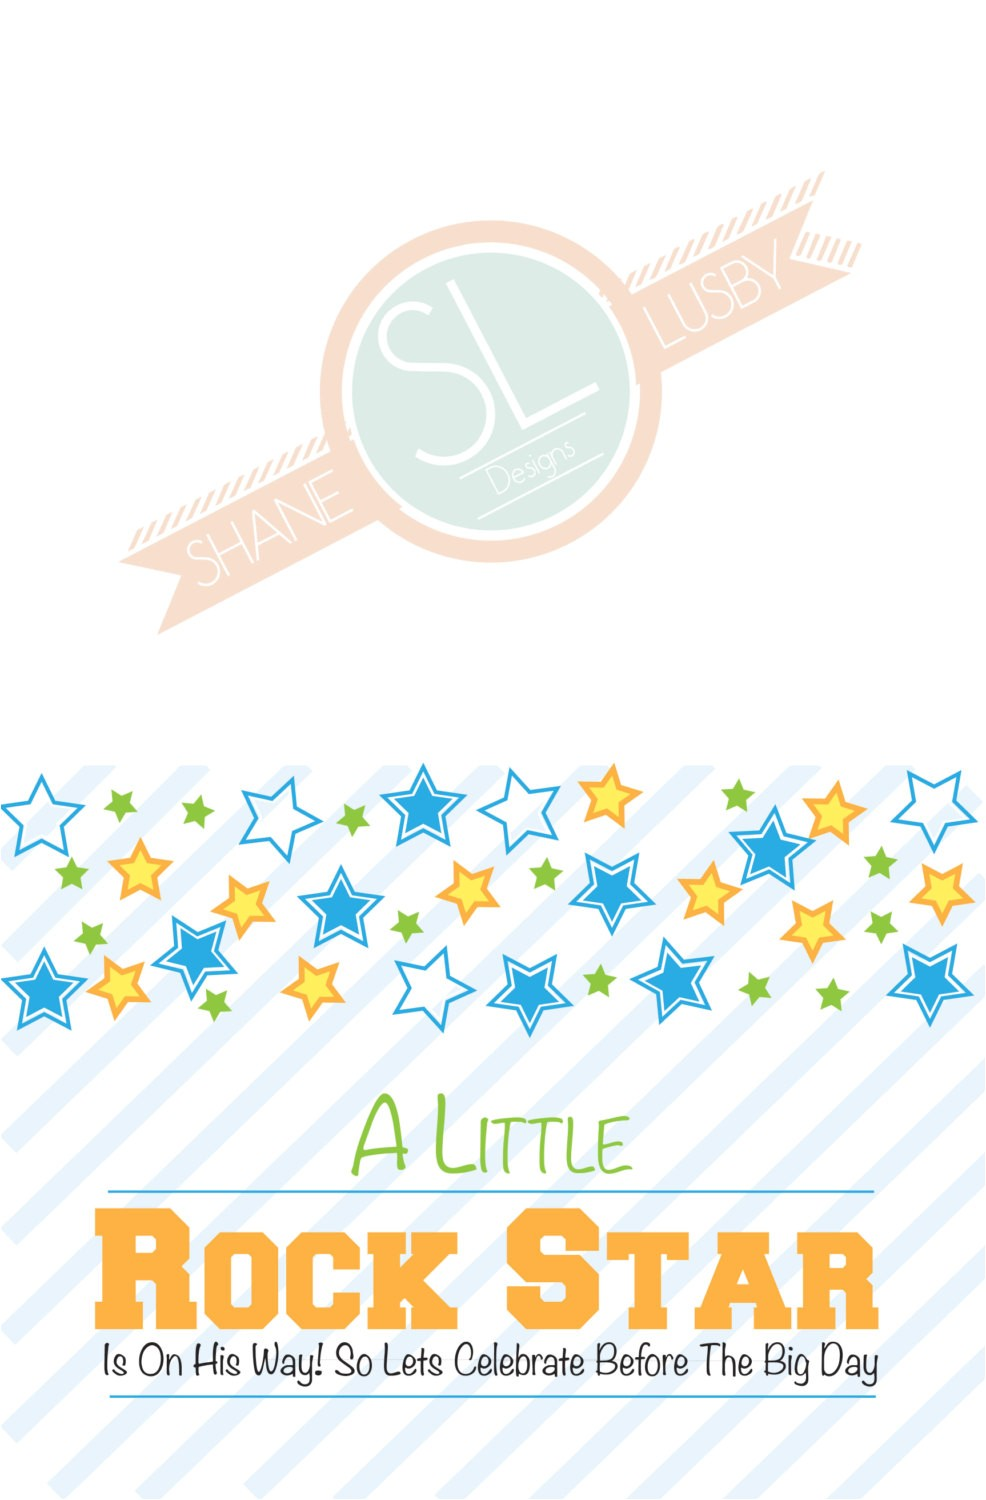 Rock Star Baby Shower Invitations Rock Star Baby Shower Invitations Made to order by Smlstudio